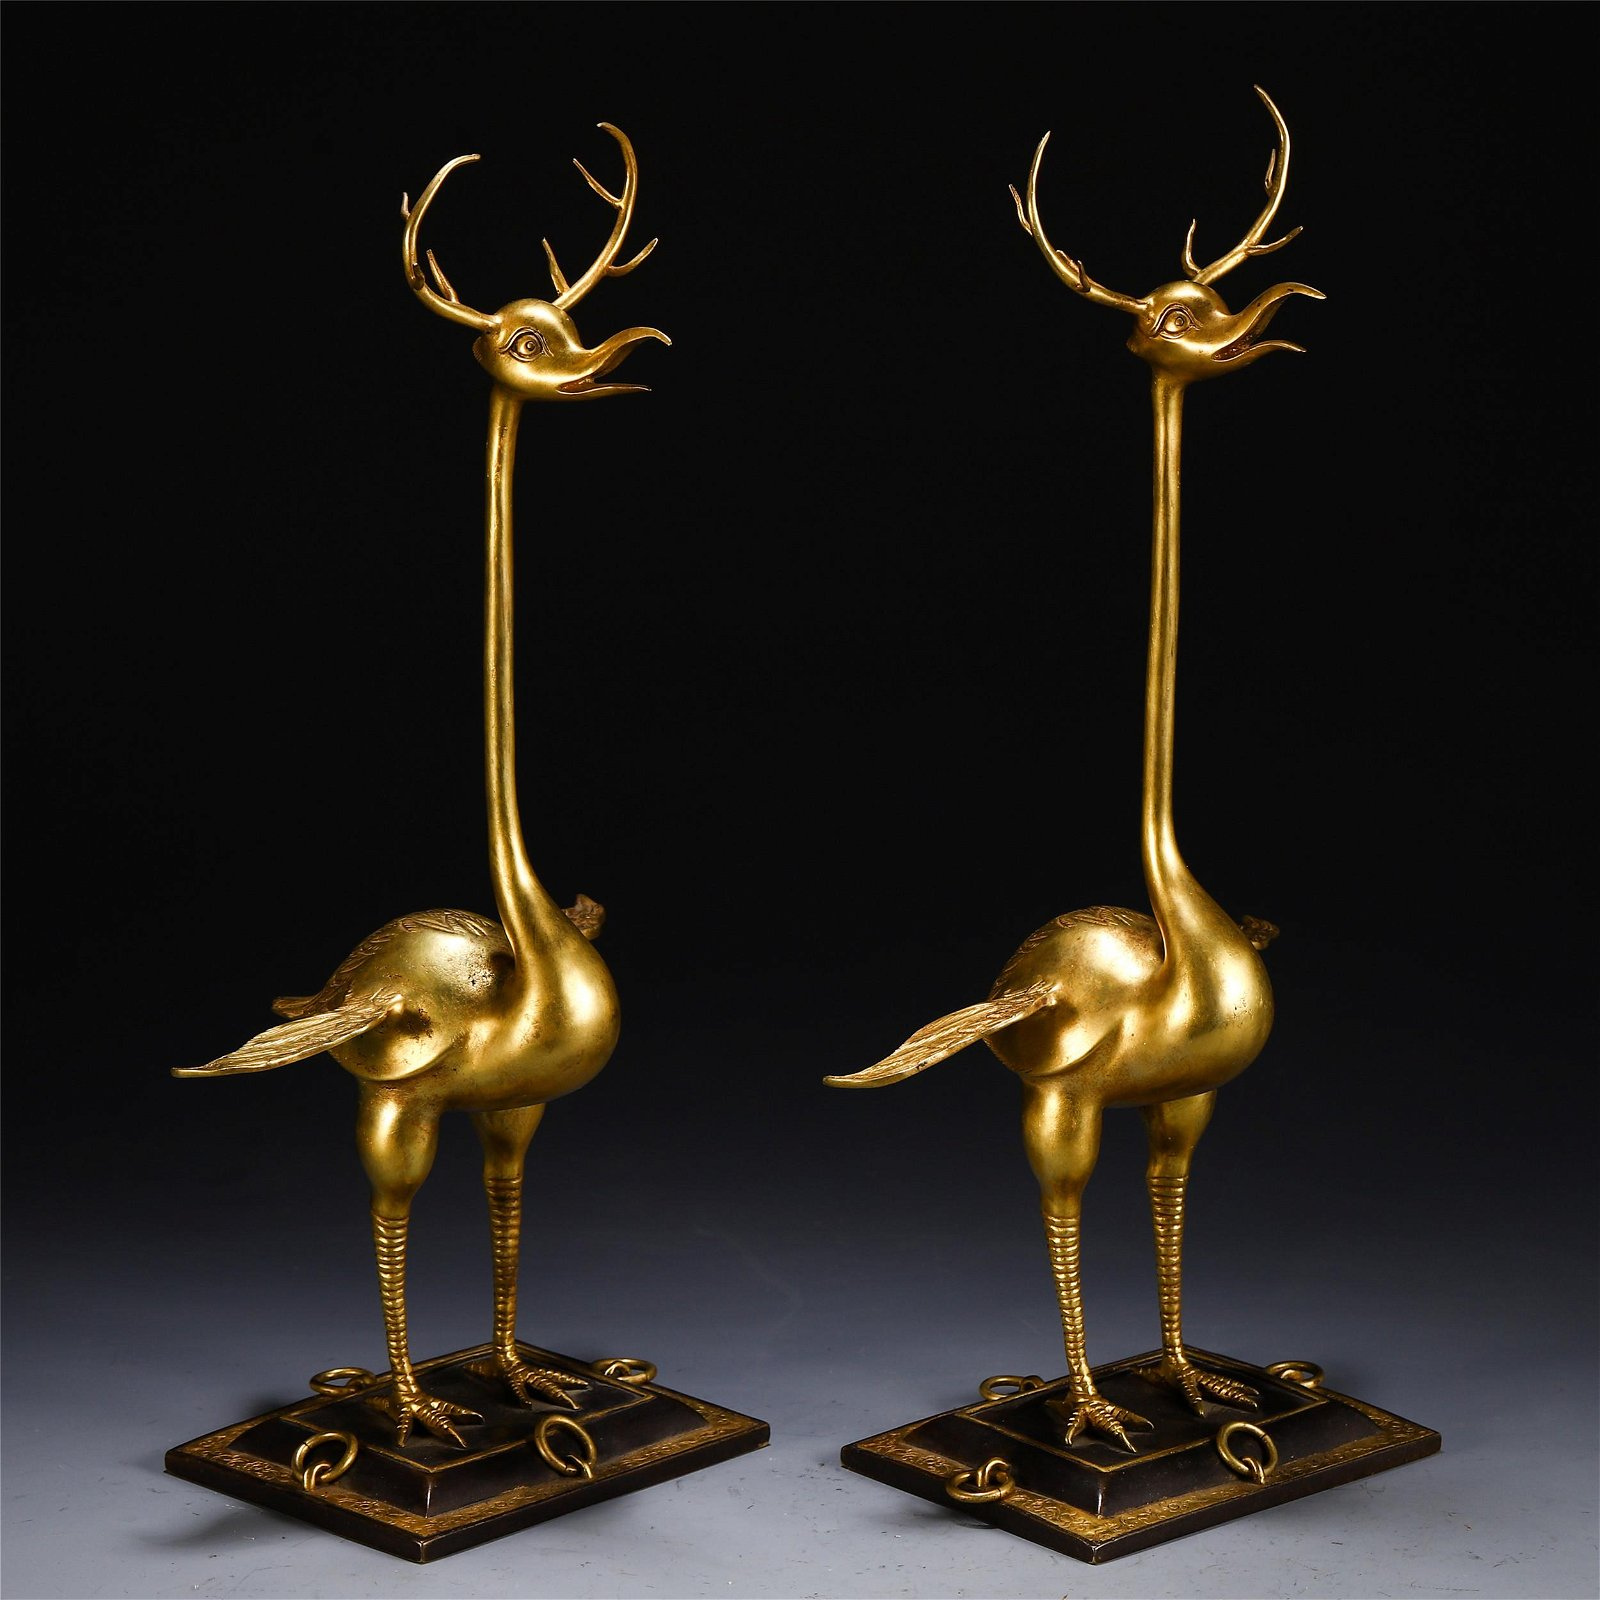 A PAIR OF CHINESE GILT BRONZE BEAST TABLE ITEM